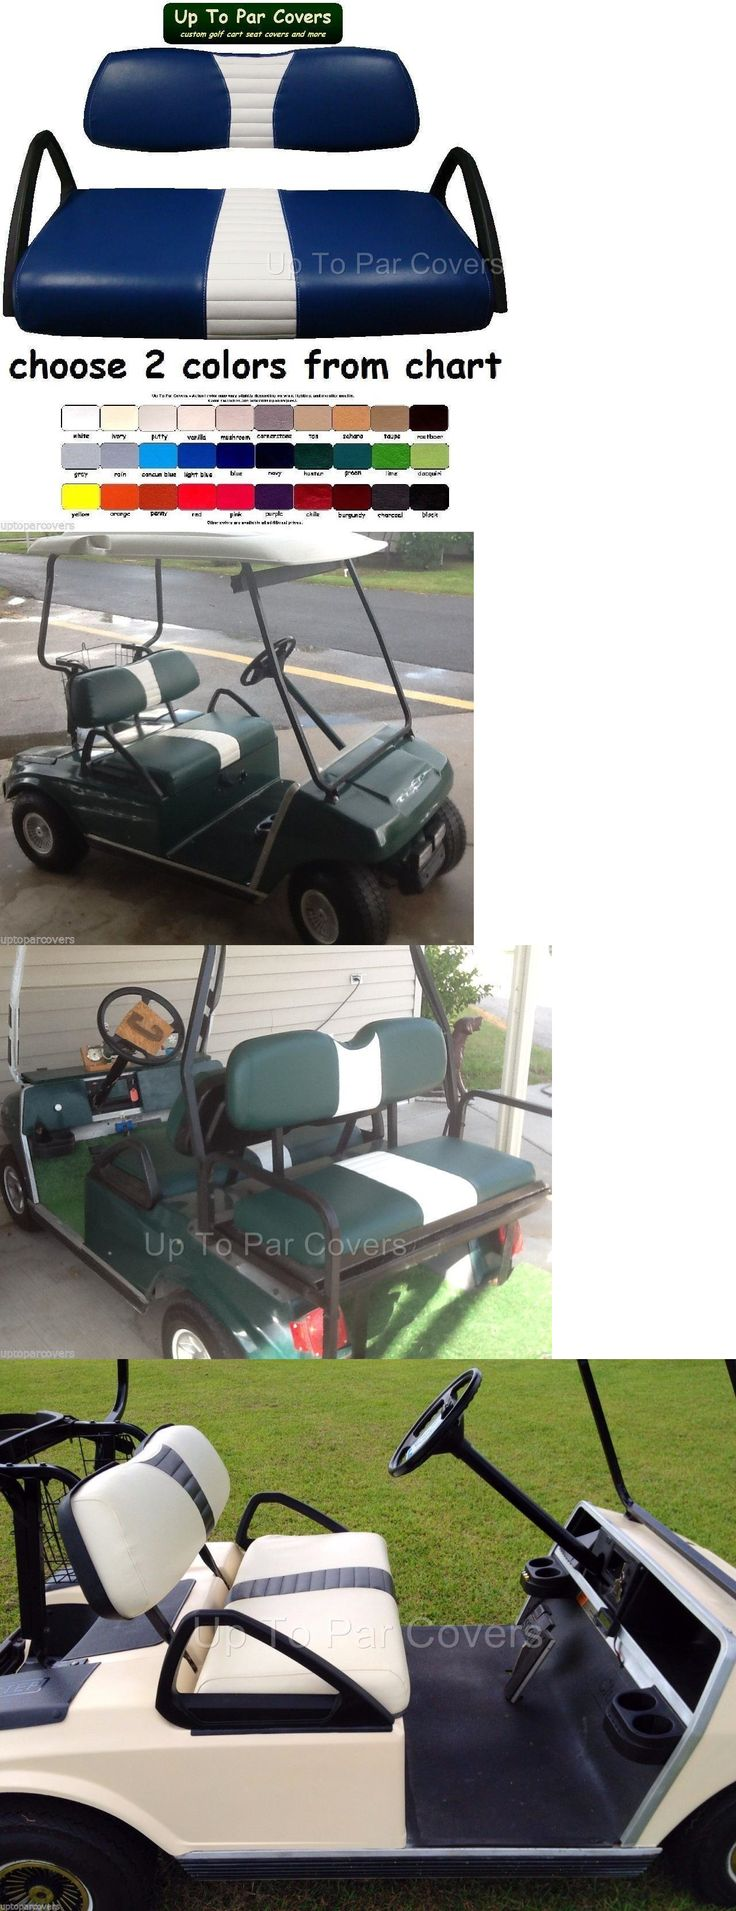 Push-Pull Golf Carts 75207: Club Car Ds 2000+ Golf Cart Custom Front And Rear Flip Seat Cover Combo Set -> BUY IT NOW ONLY: $89.99 on eBay!